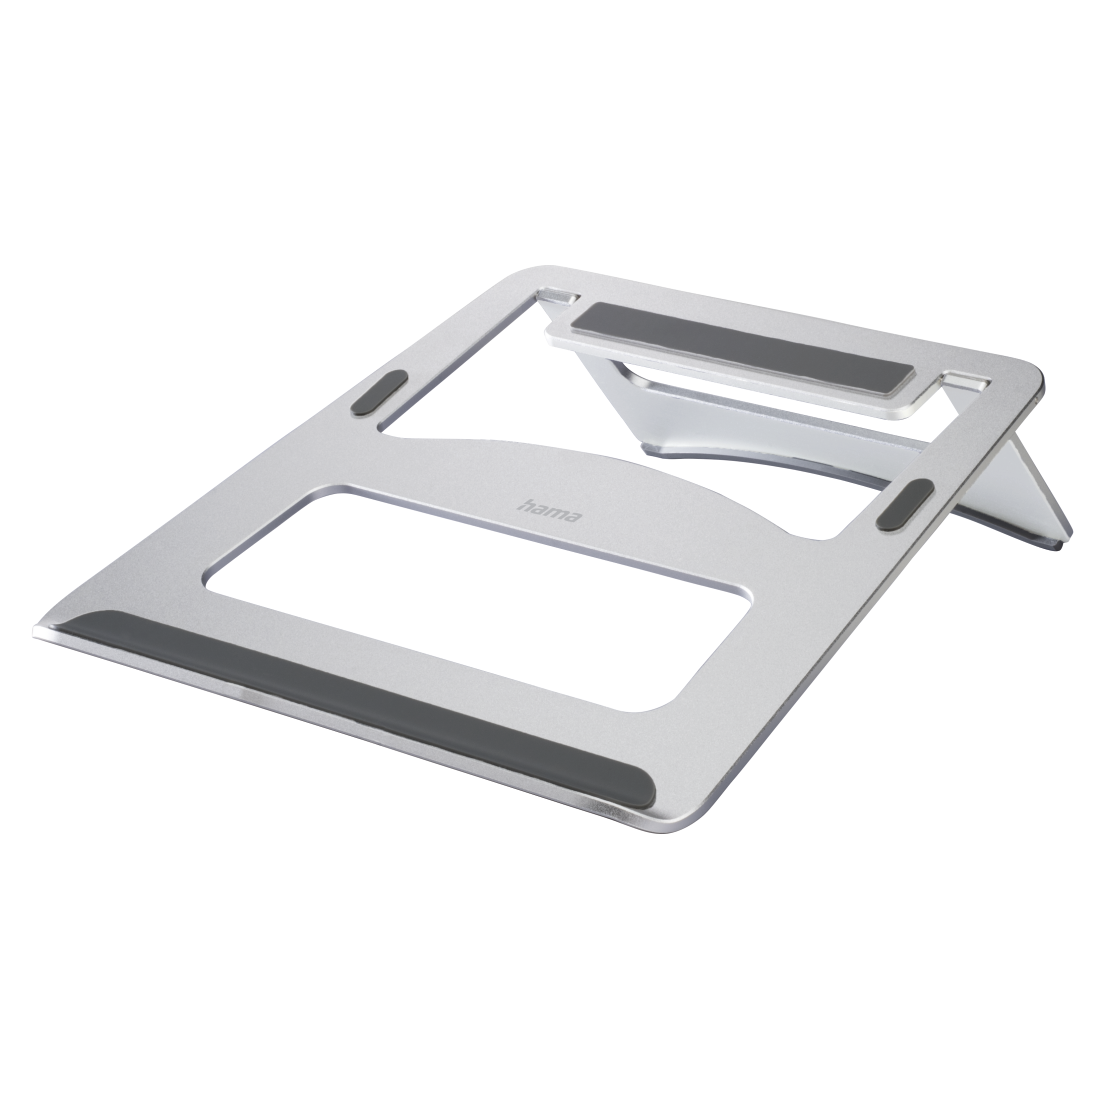 abx High-Res Image - Hama, Support pour ordinateur portable Aluminium, argent